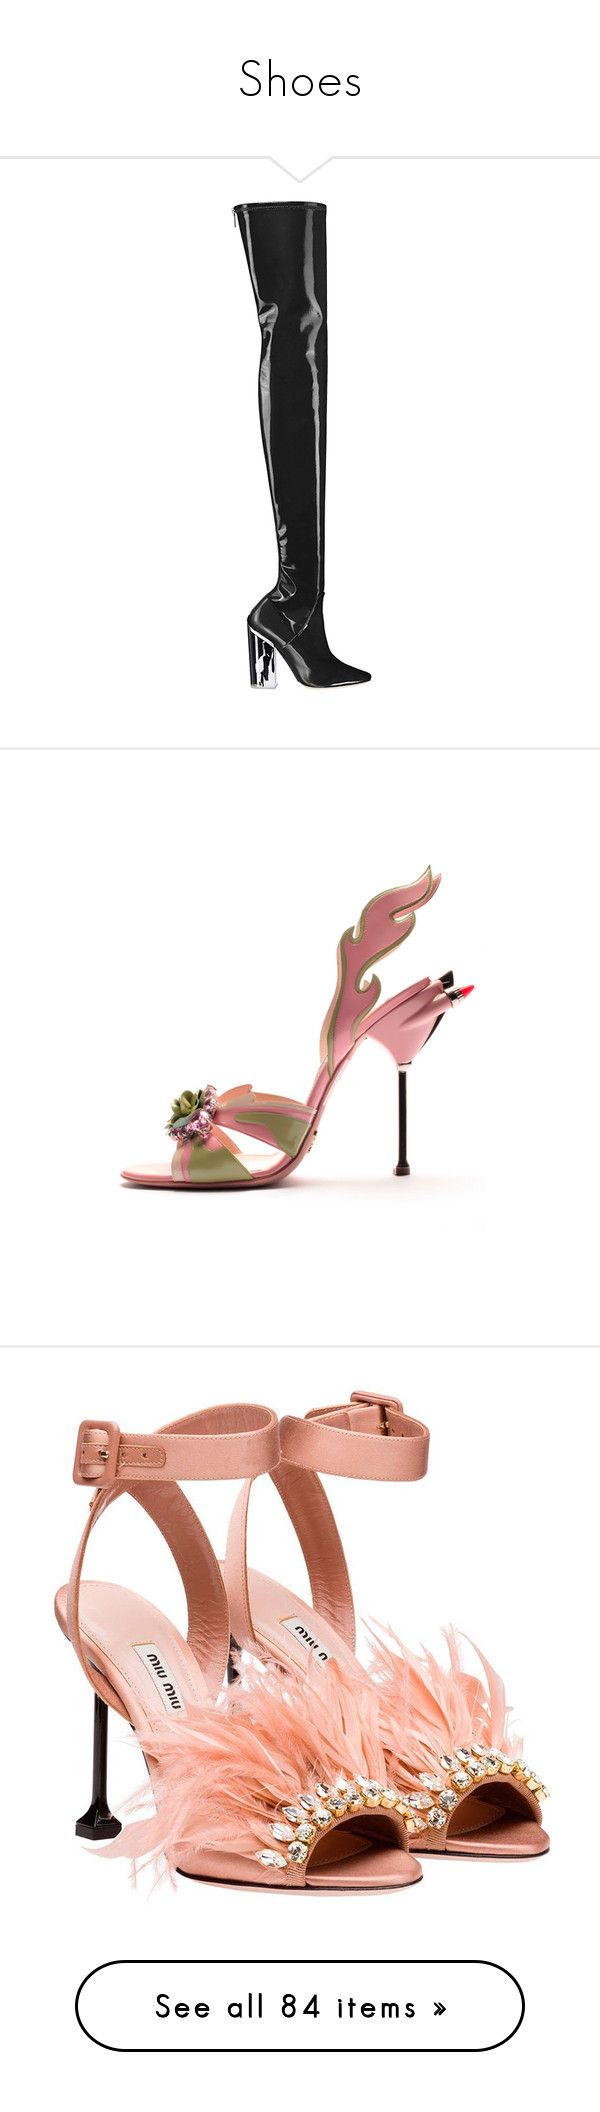 """Shoes"" by luisabad67 ❤ liked on Polyvore featuring shoes, boots, heels, sandals, miu miu, feather heeled sandals, heeled sandals, embellished heeled sandals, embellished shoes and embellished sandals"